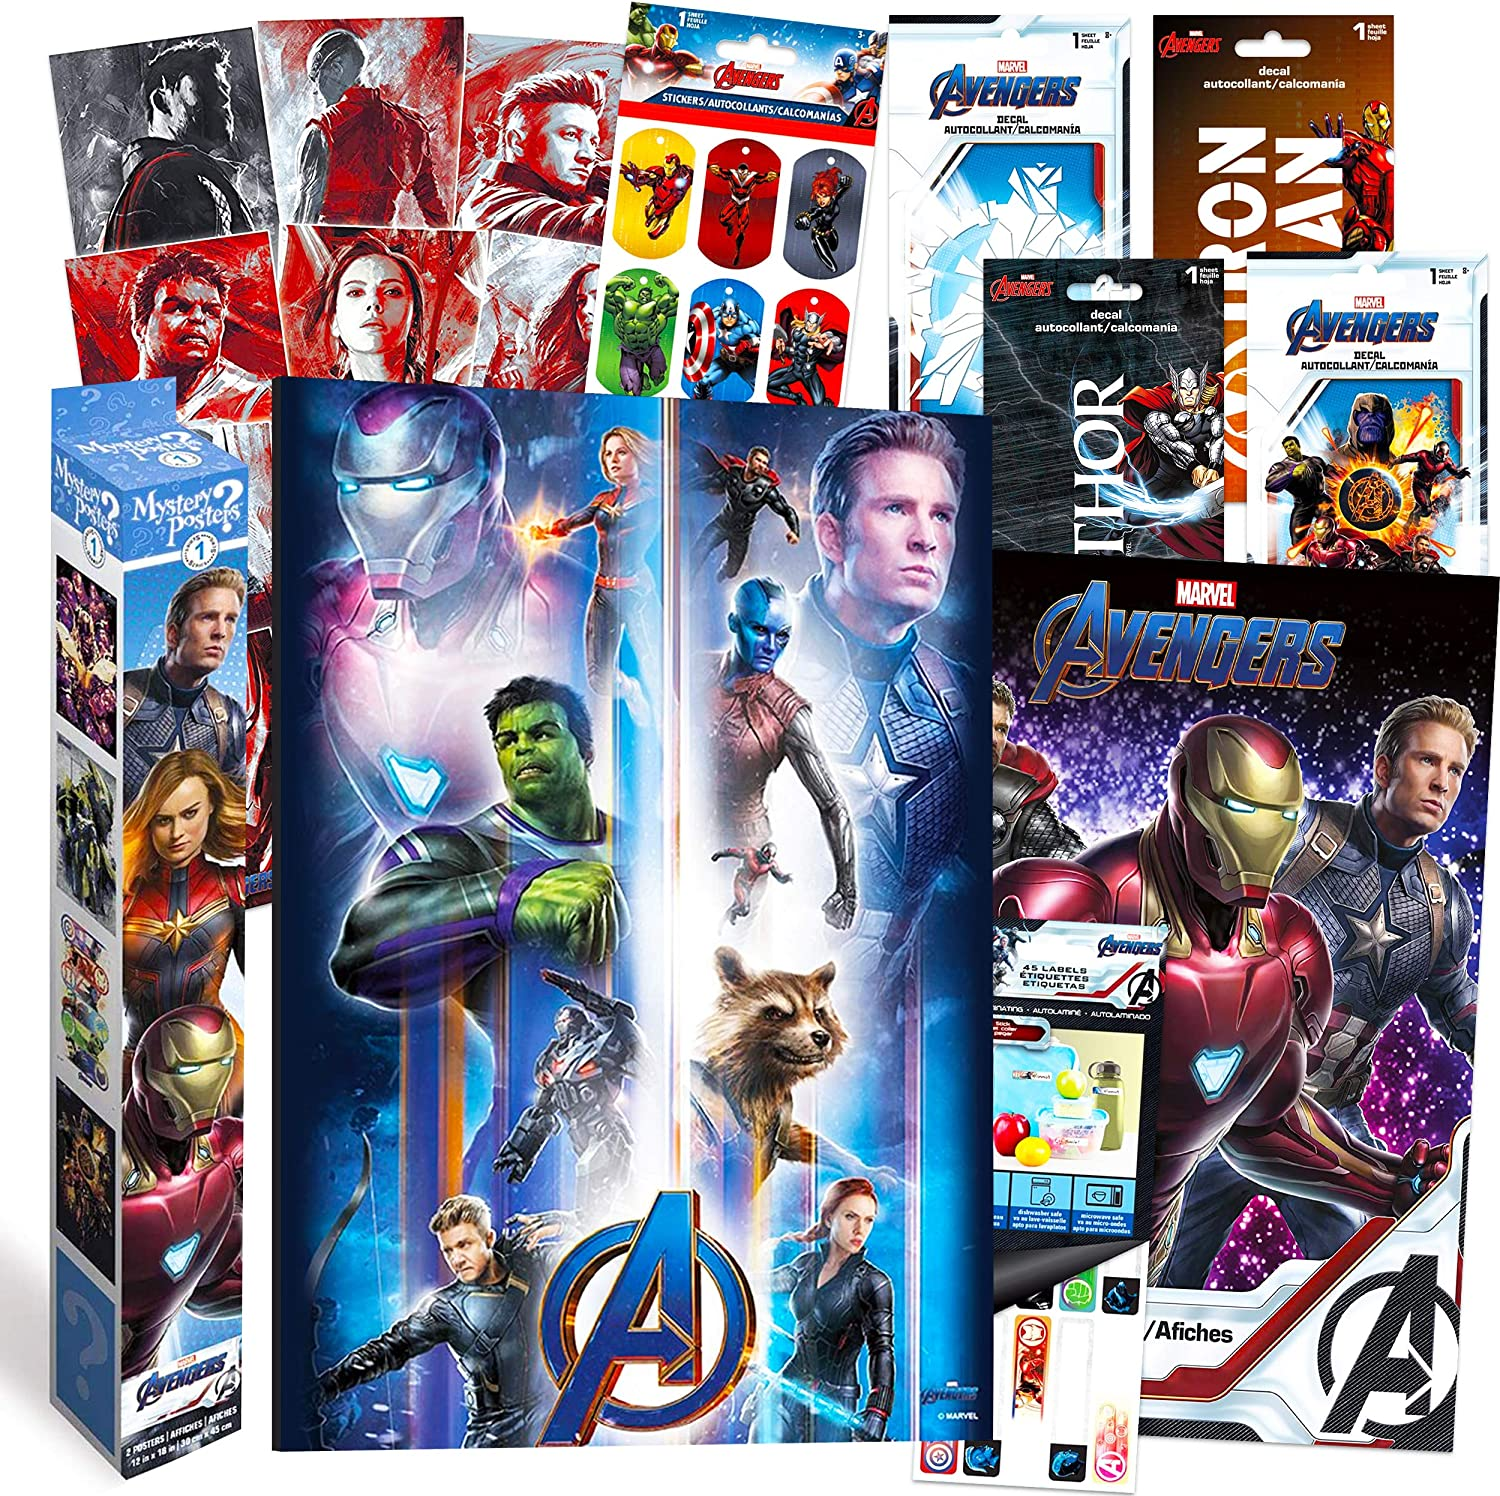 Marvel Limited time sale Avengers Decorations Indianapolis Mall Artwork Wall ~ Ultimate Bundle 7 Art